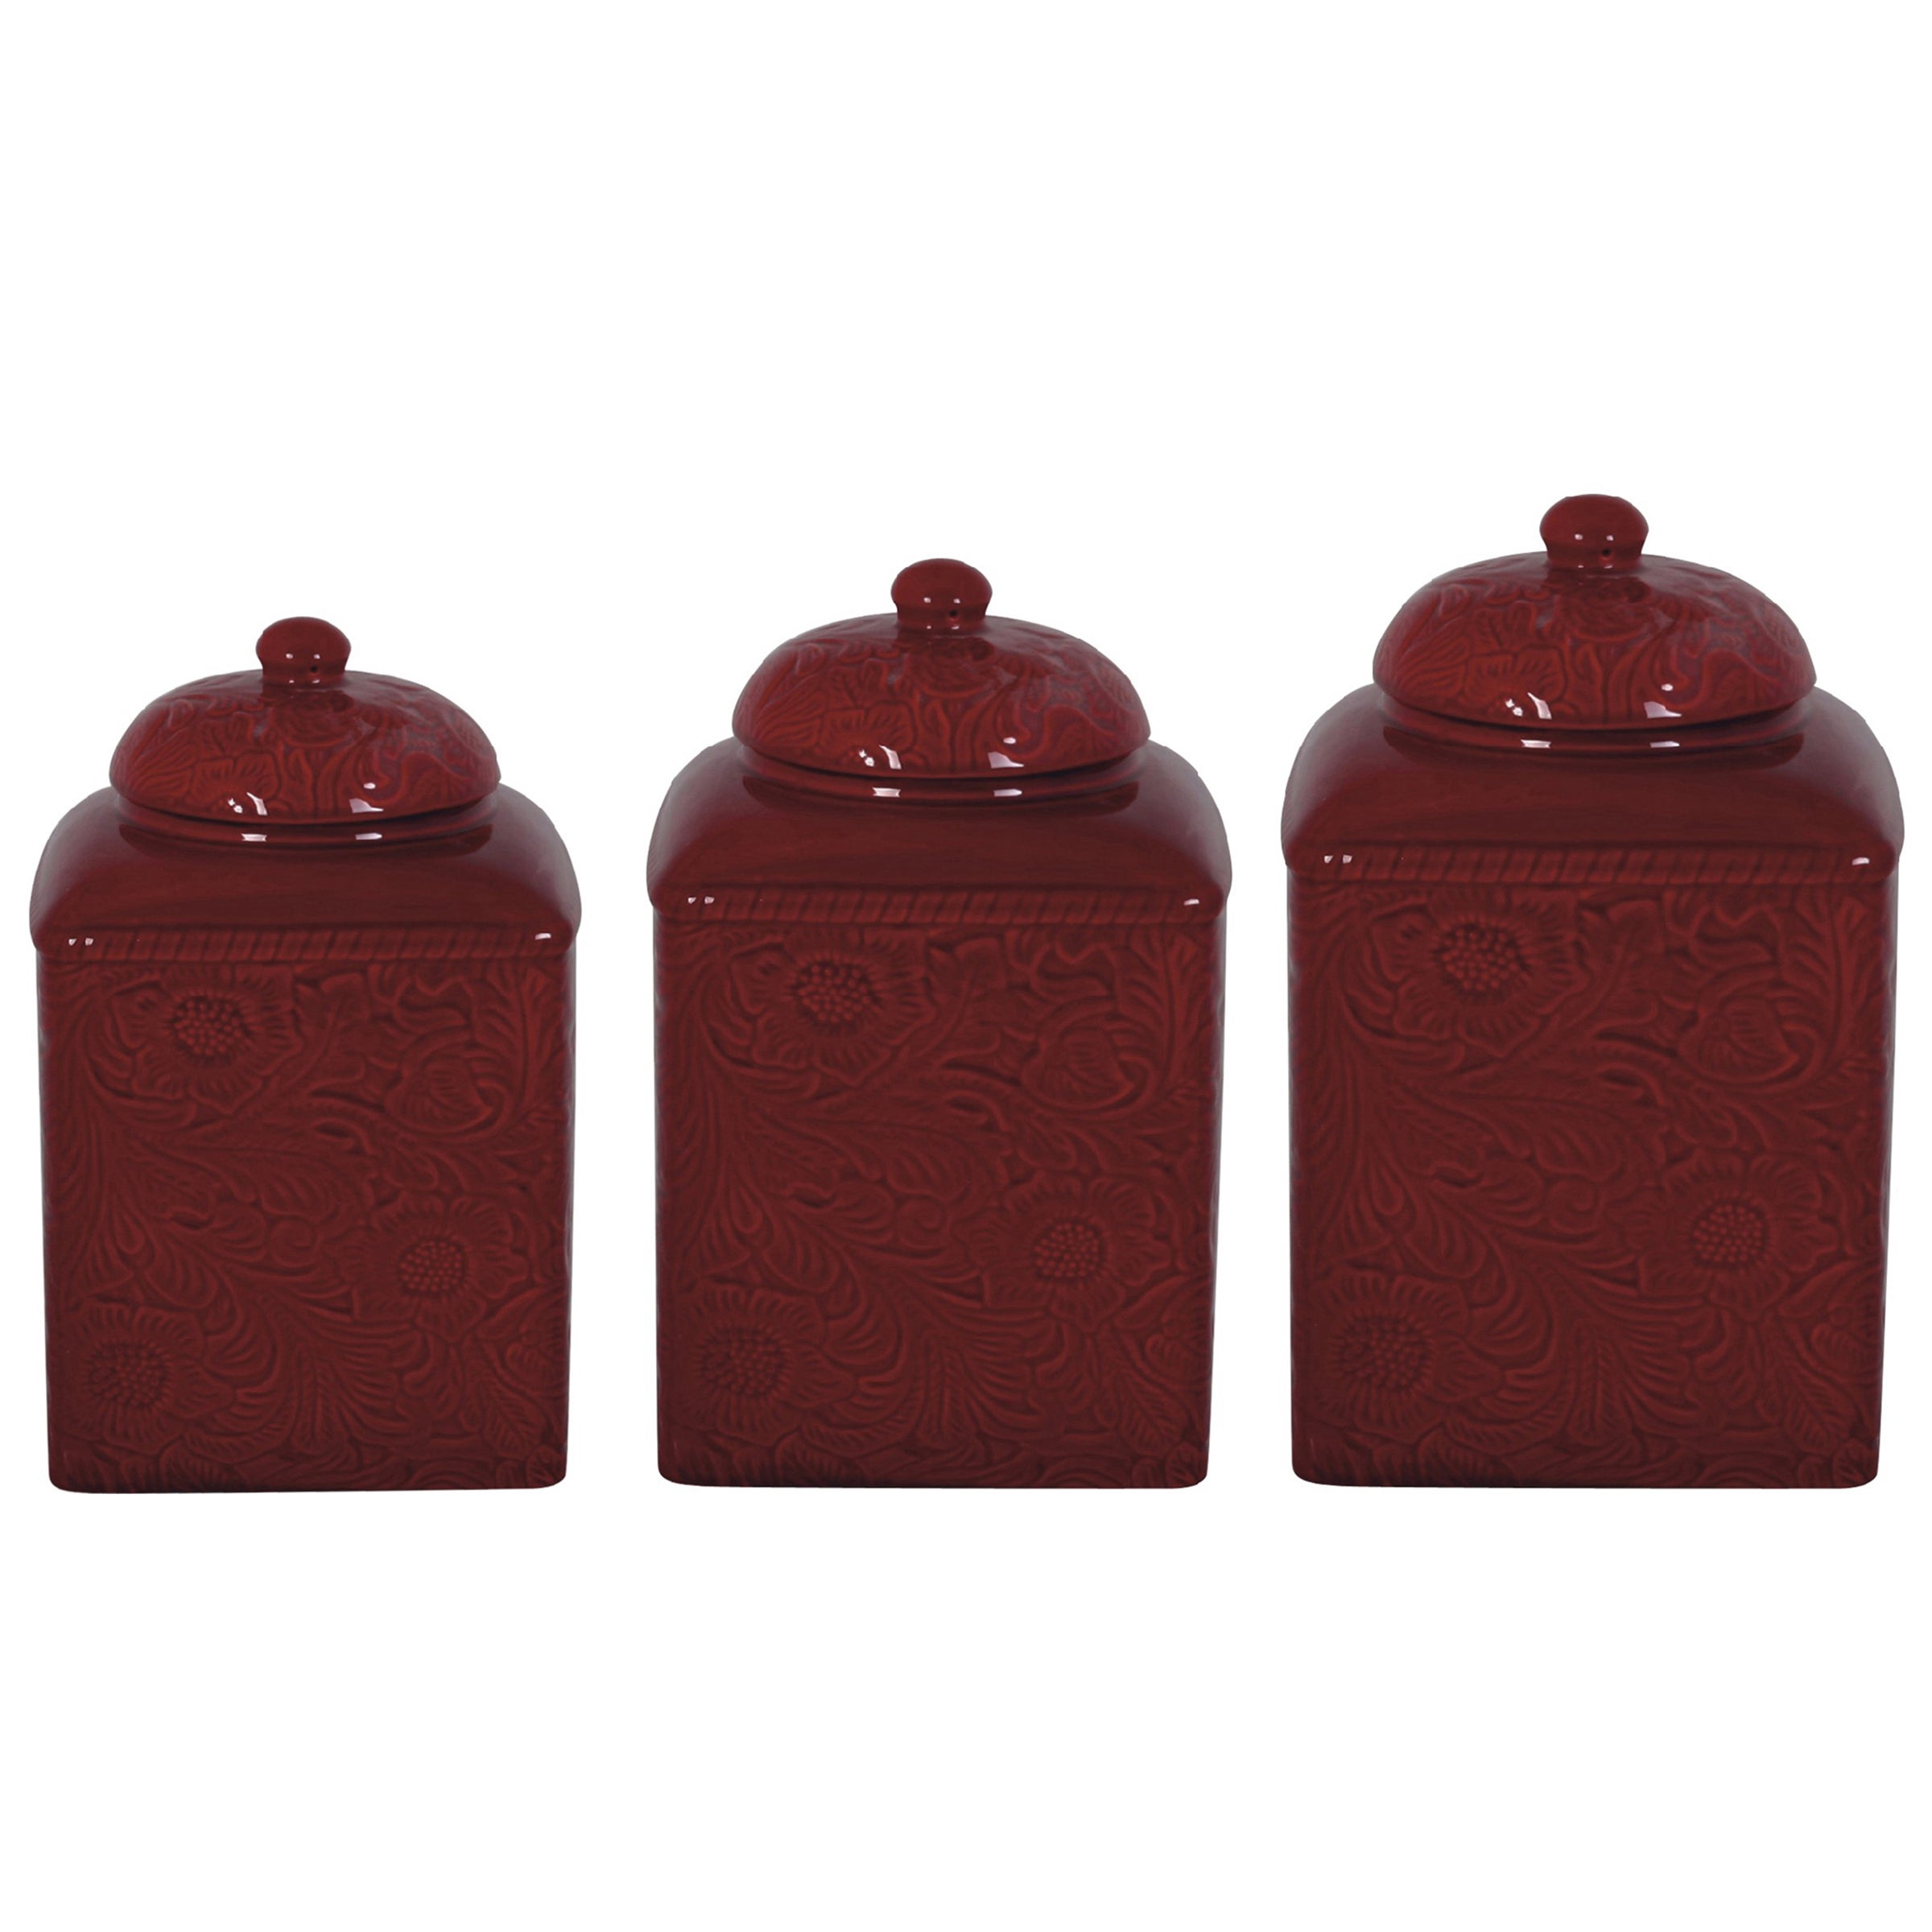 HiEnd Accents Savannah Red Canister 3 Piece Set